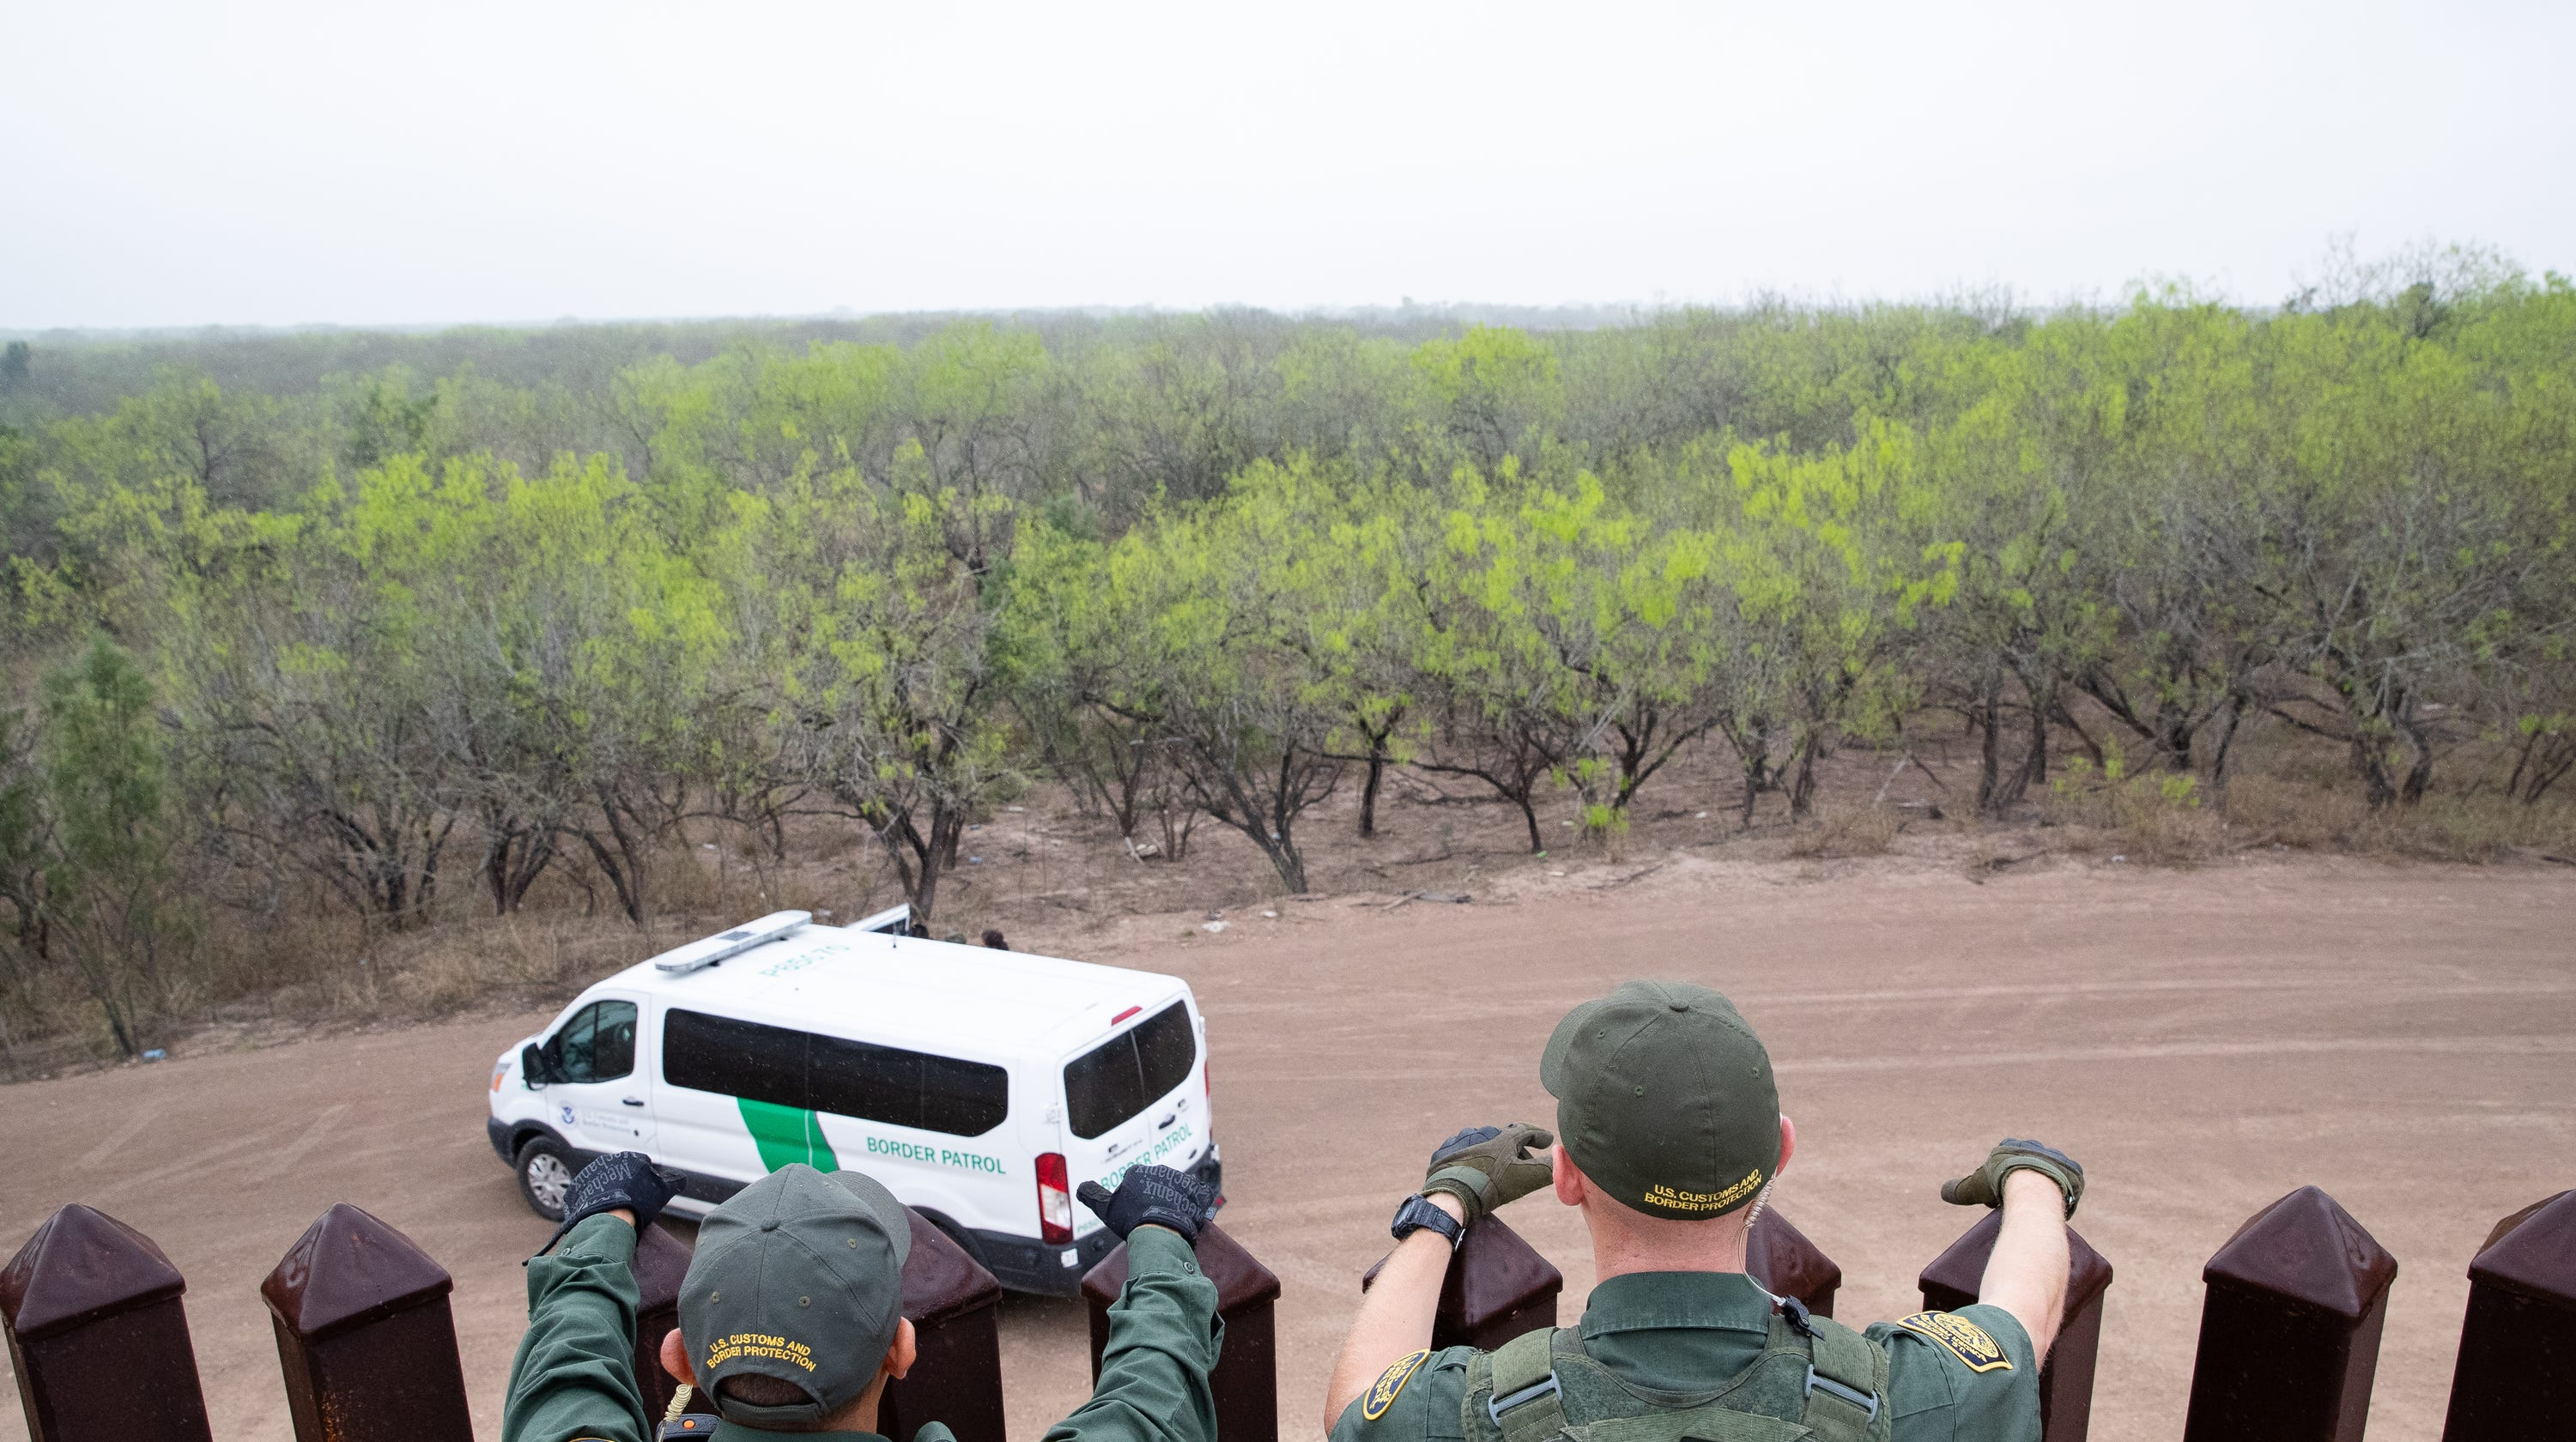 Four more miles of border wall to be constructed in Rio Grande Valley in Texas